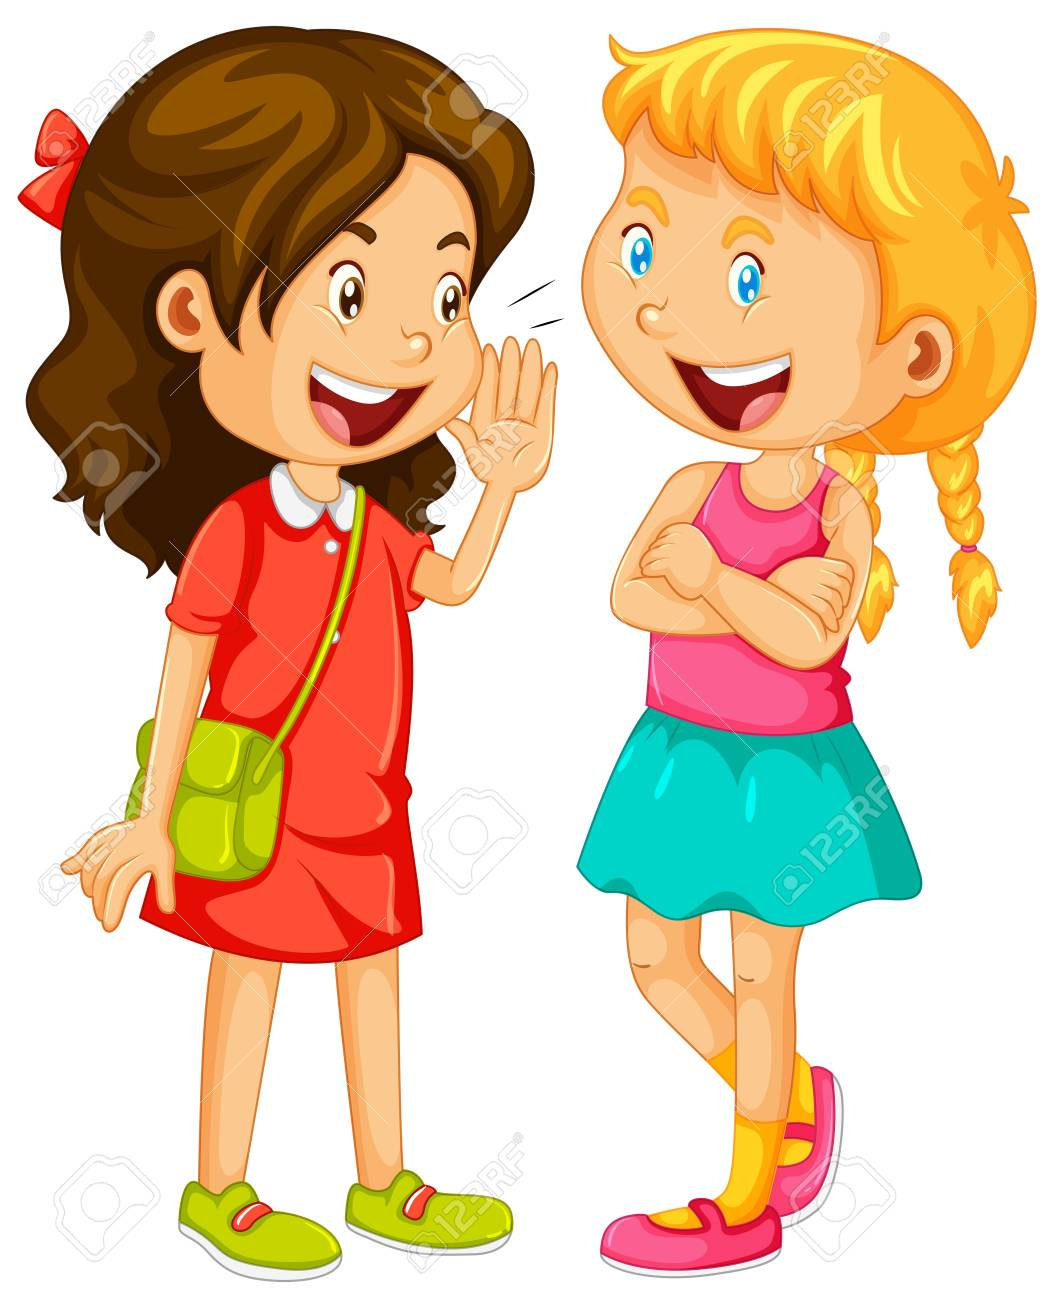 Two girls gossipping on white background illustration.